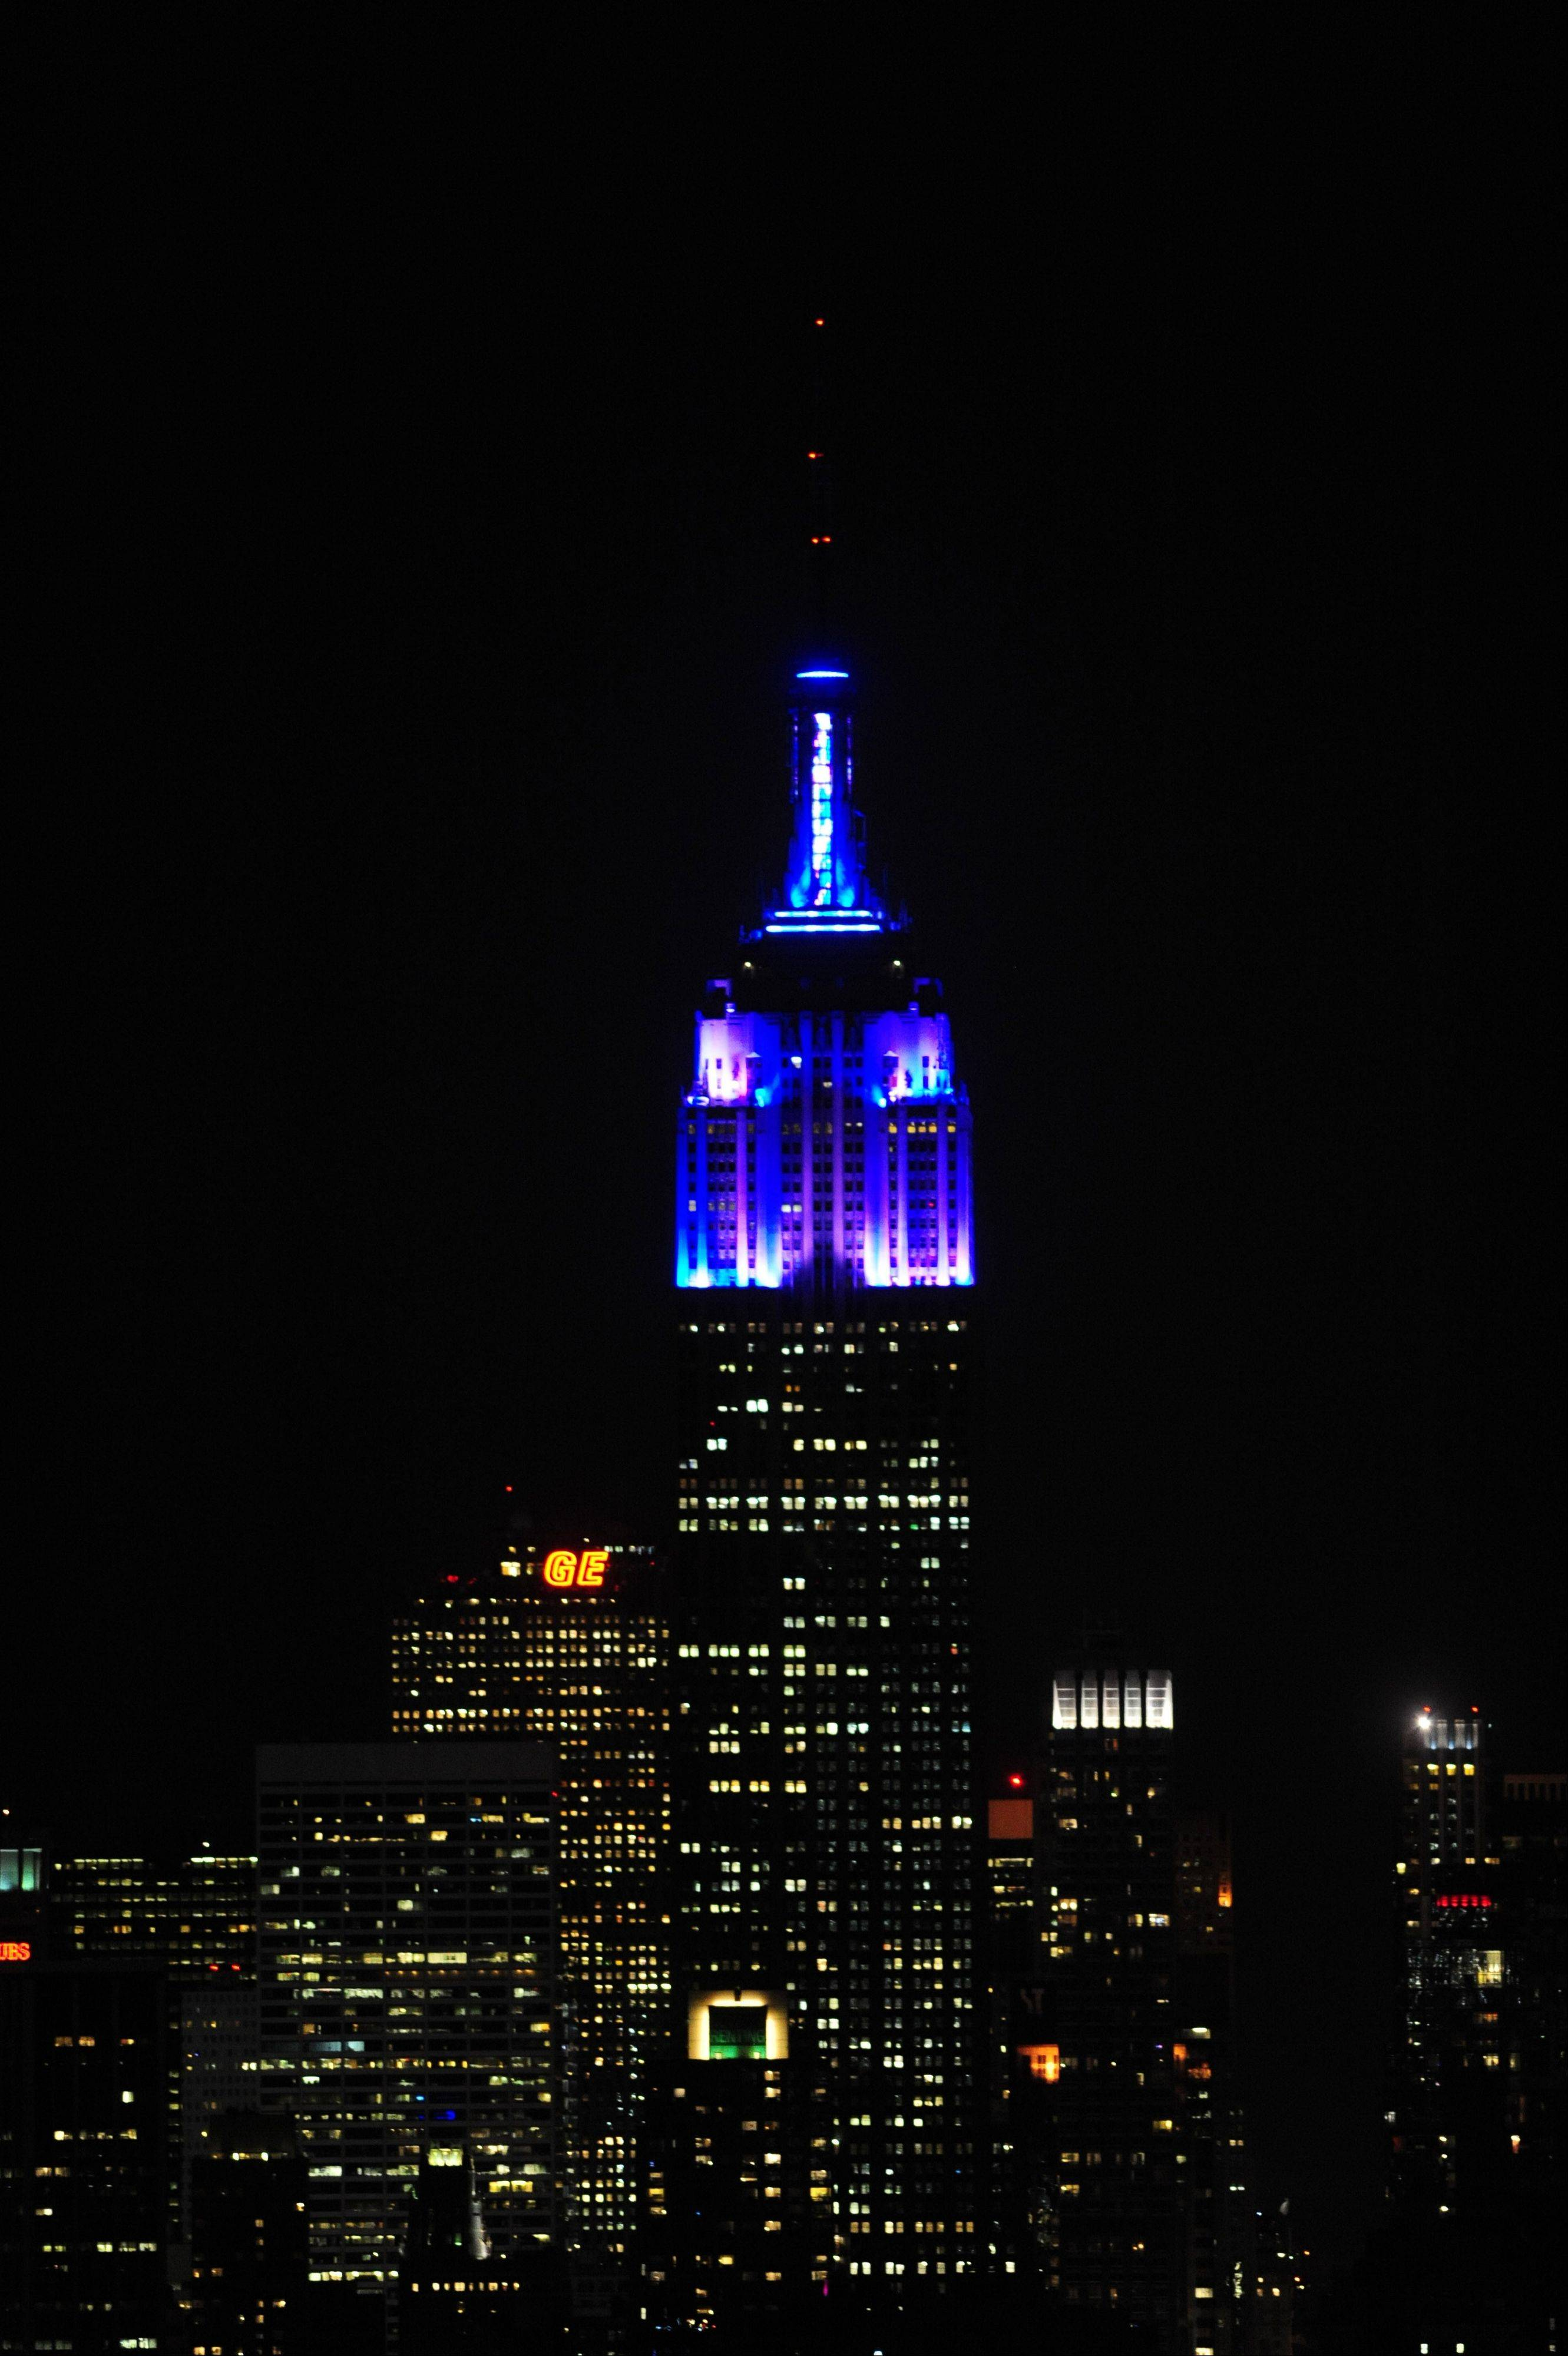 Associated PressThe top floors of New York's Empire State Building are lit in blue and white light after being switched on by R&B star Alicia Keys. The landmark boasts a new LED lighting system with a palette of more than 16 million colors in limitless combinations.